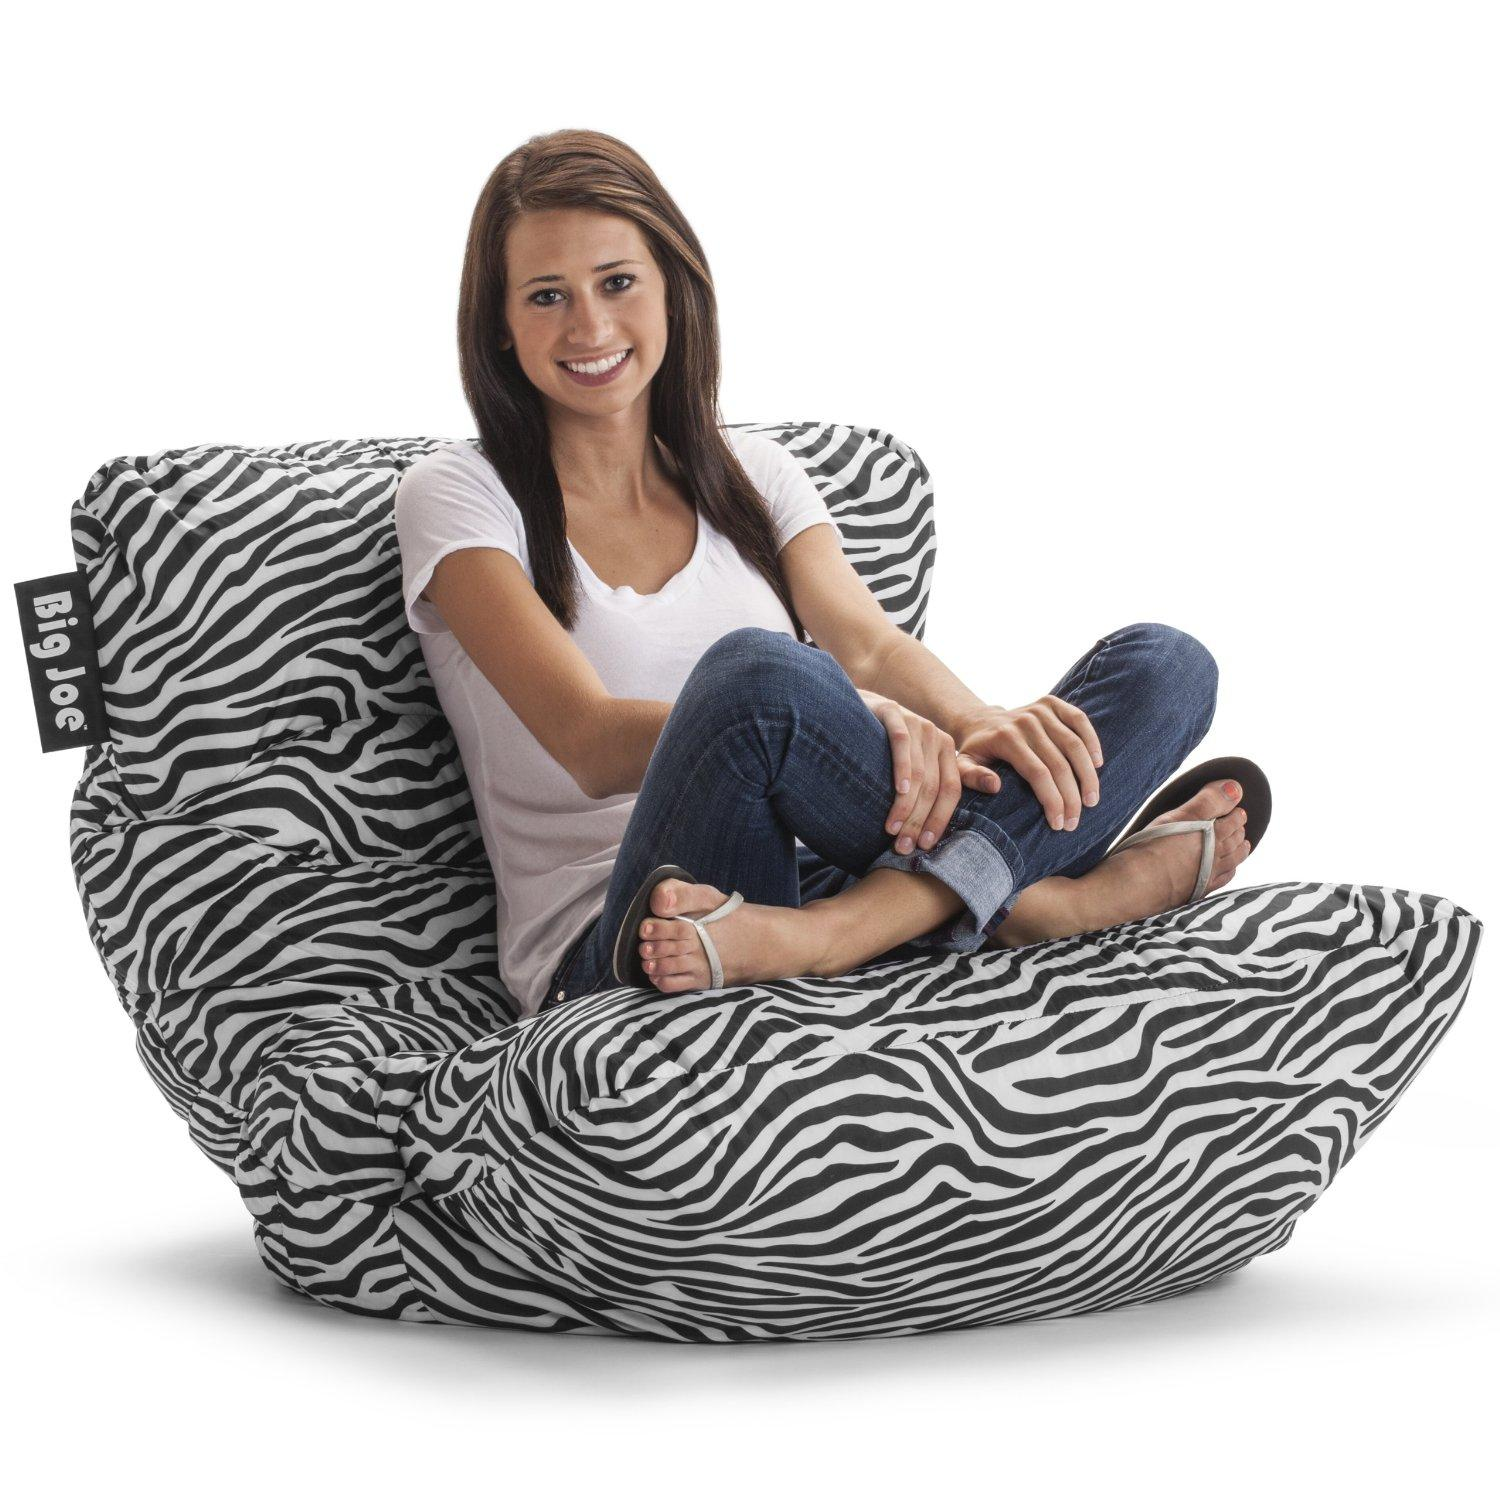 $29 Big Joe Roma Bean Bag Chair, Zebra